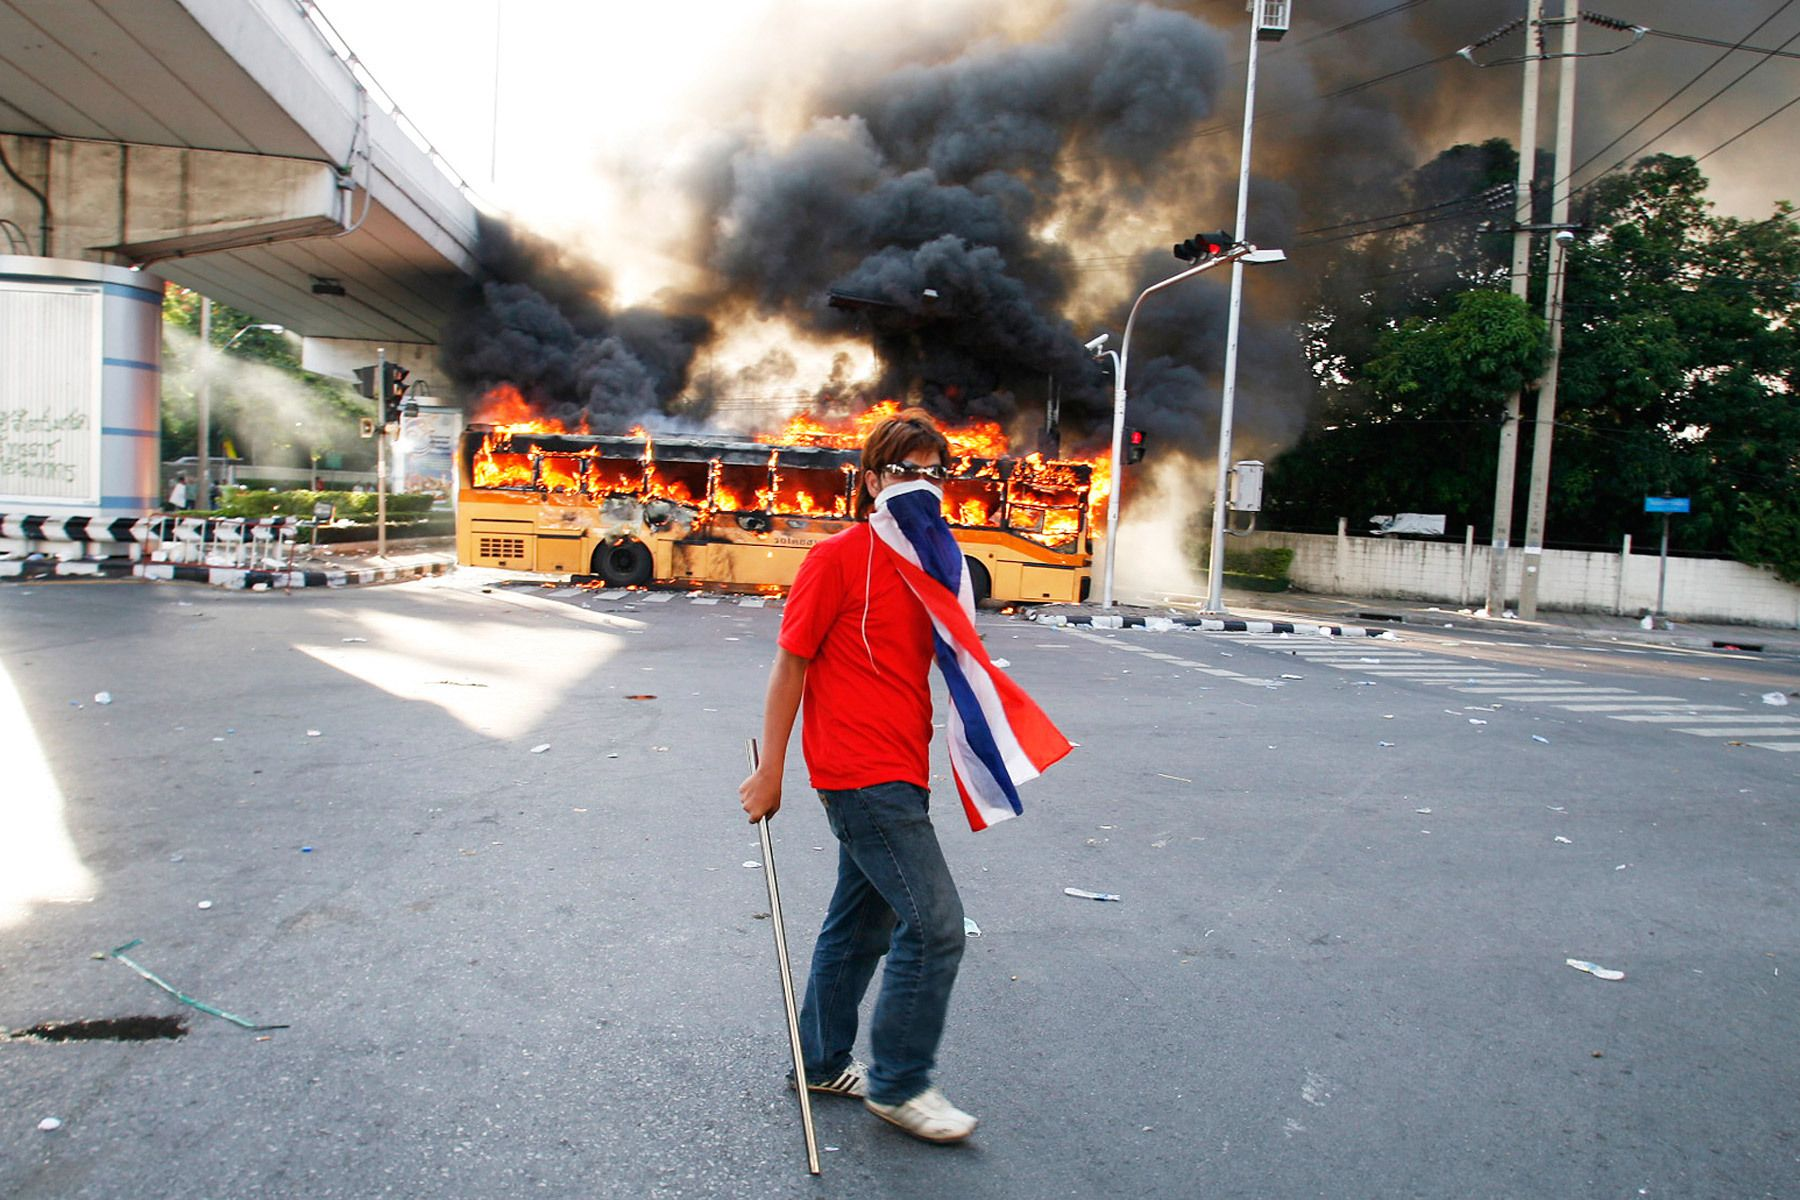 A member of the anti-government United Front for Democracy against Dictatorship (UDD) walks past a bus torched by the UDD in Bangkok. Two days of rioting by the UDD left two people dead and some 100 injured.